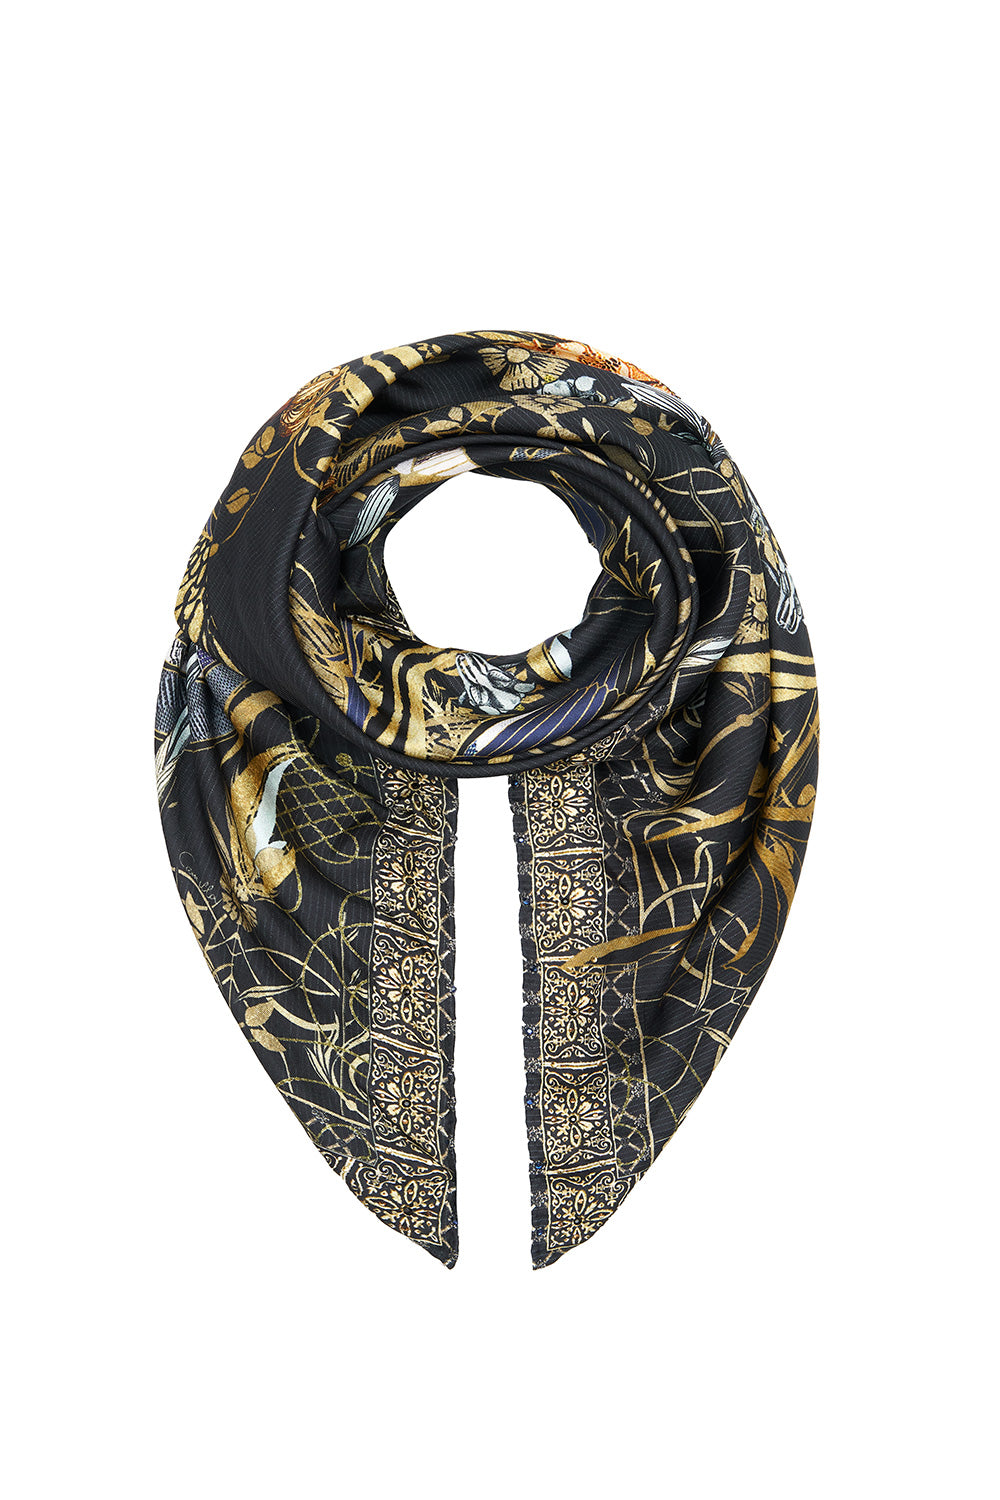 LARGE SQUARE SCARF THE JEWELLED ARROW